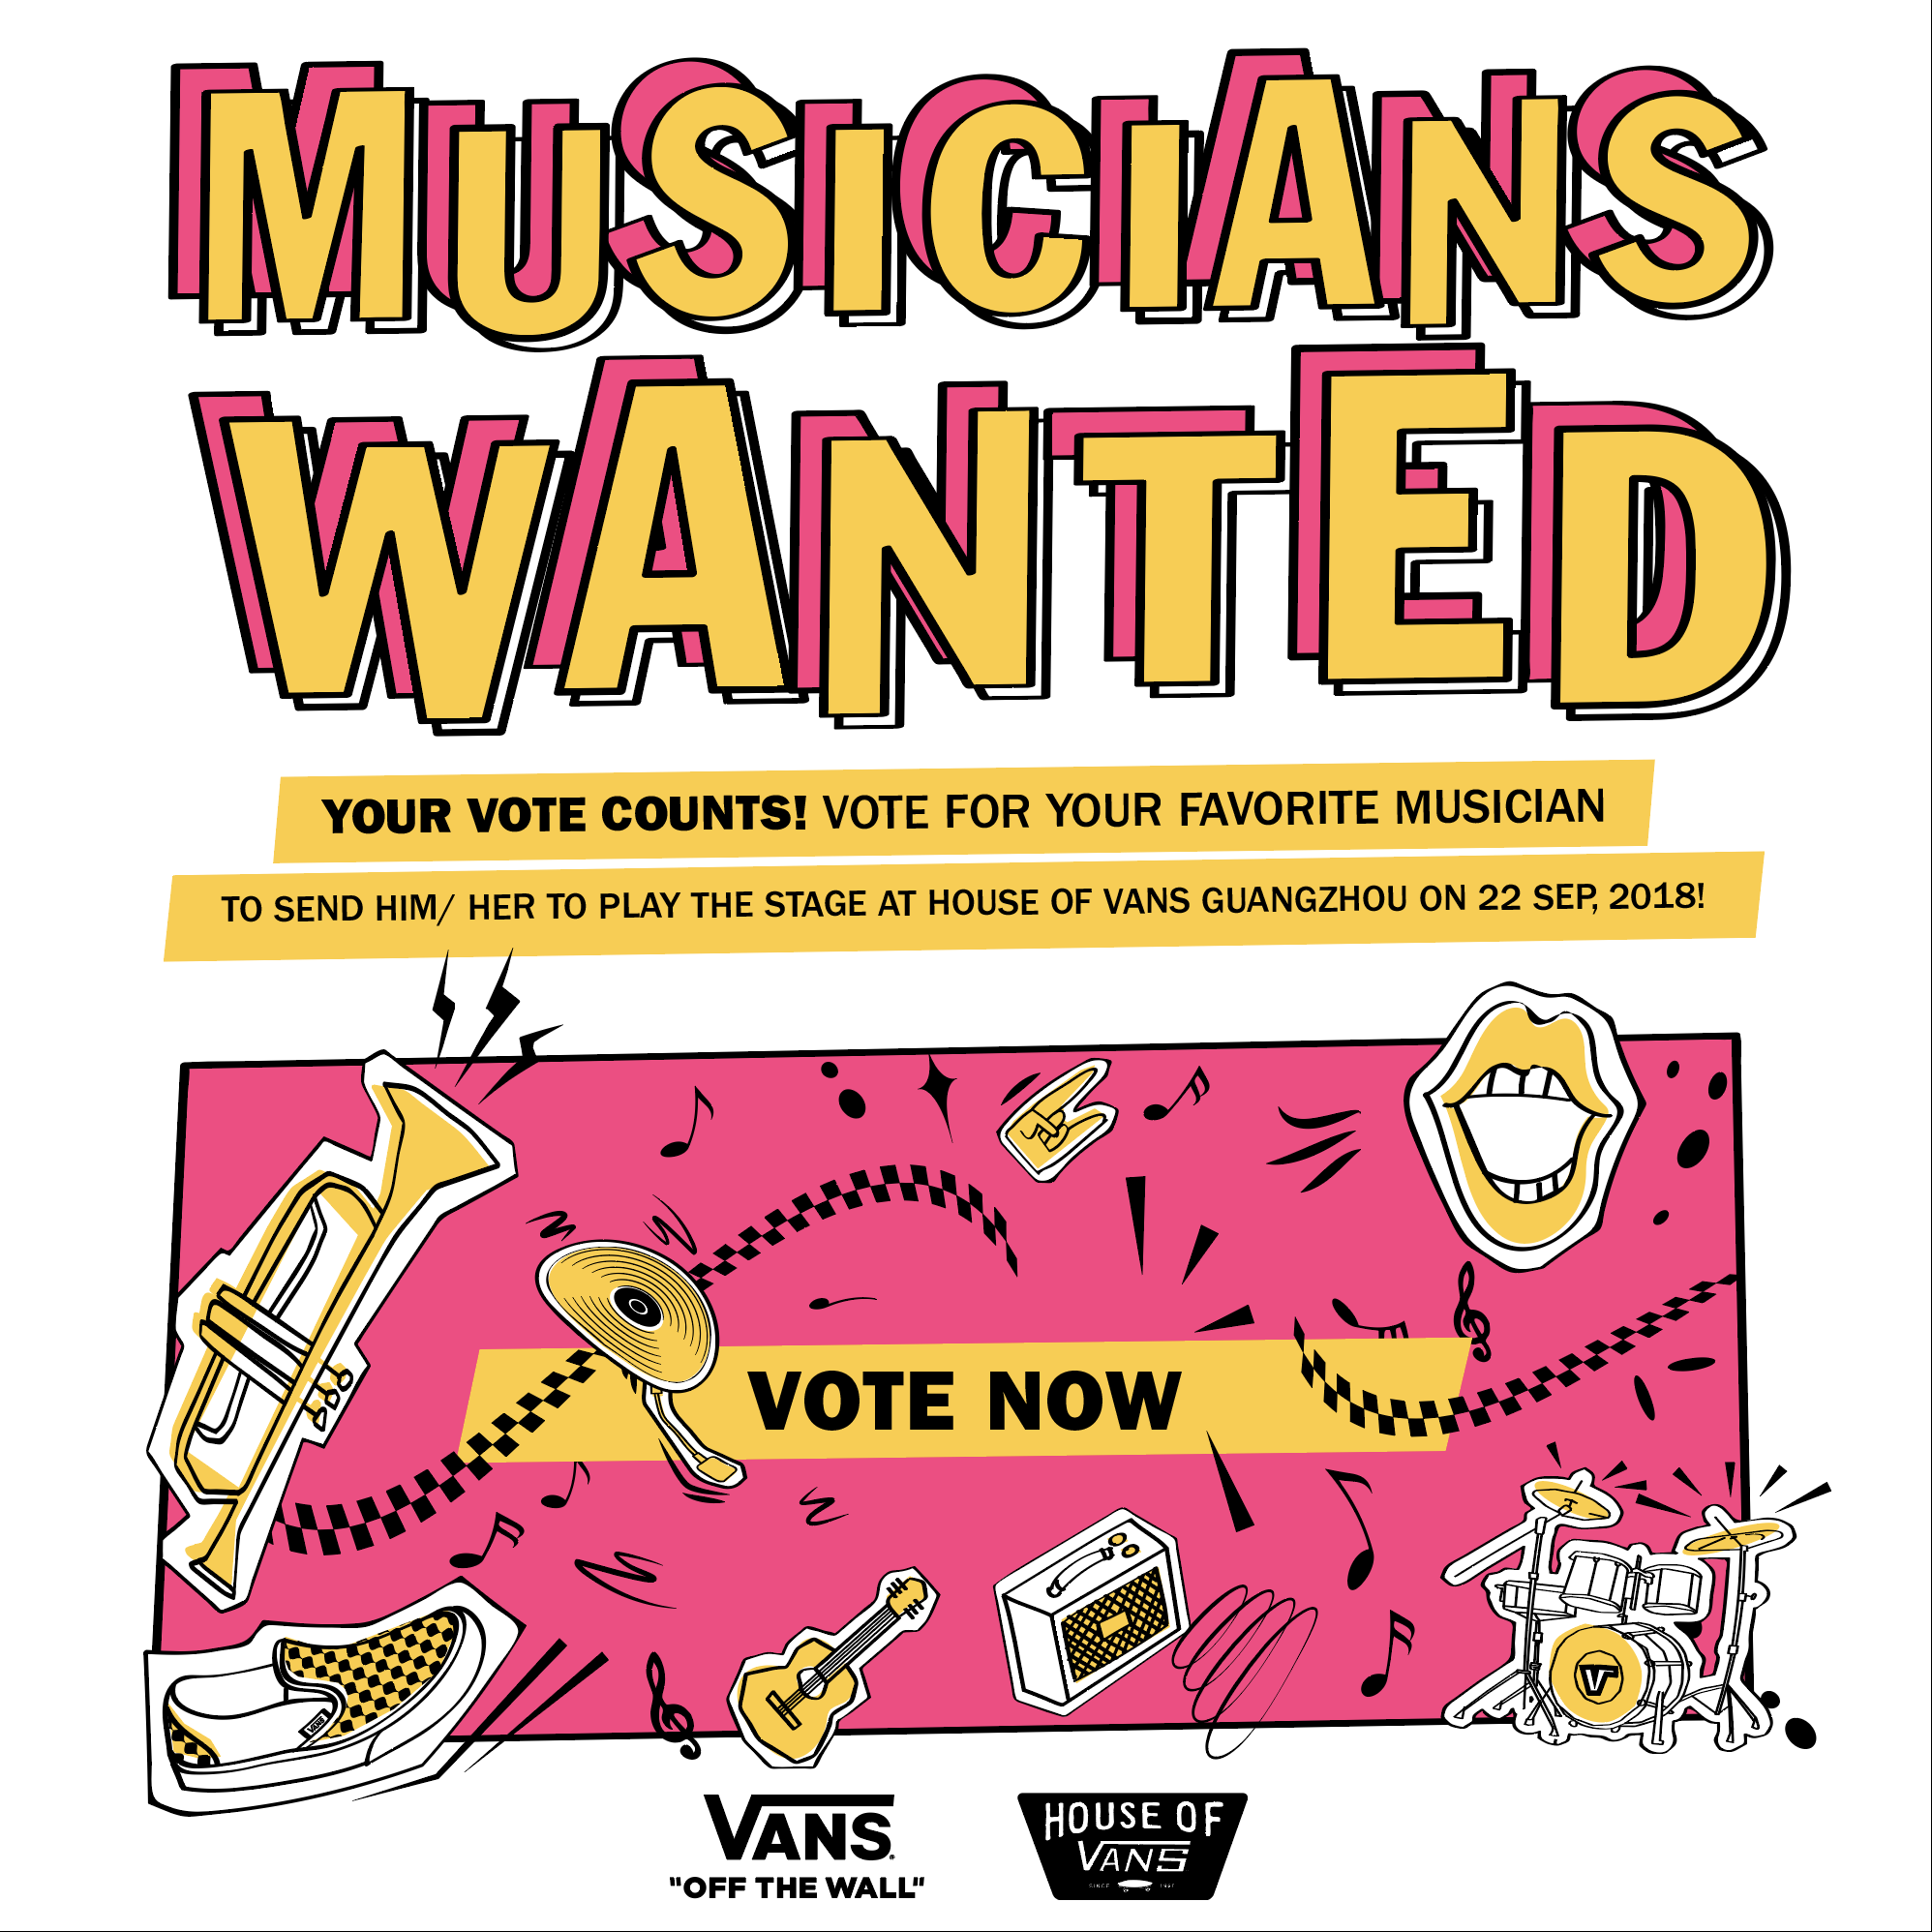 2018 VANS MUSICIANS WANTED HAS ARRIVED AT THE FINAL STAGE